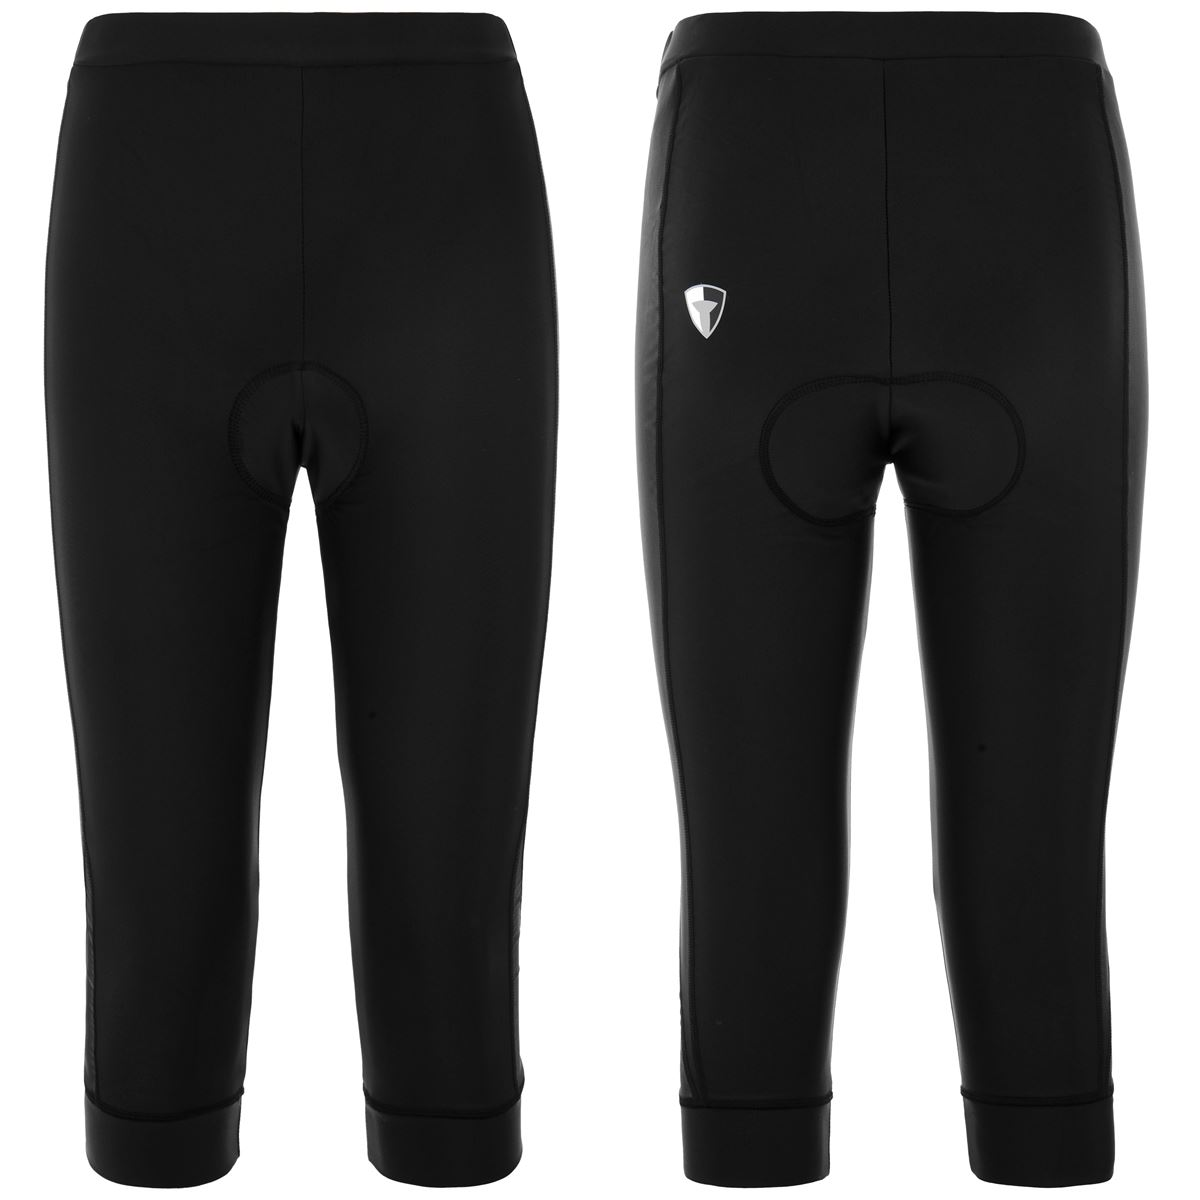 Briko Pants CLASSIC LADY PANT MID Woman Cycling sport Sport Trousers